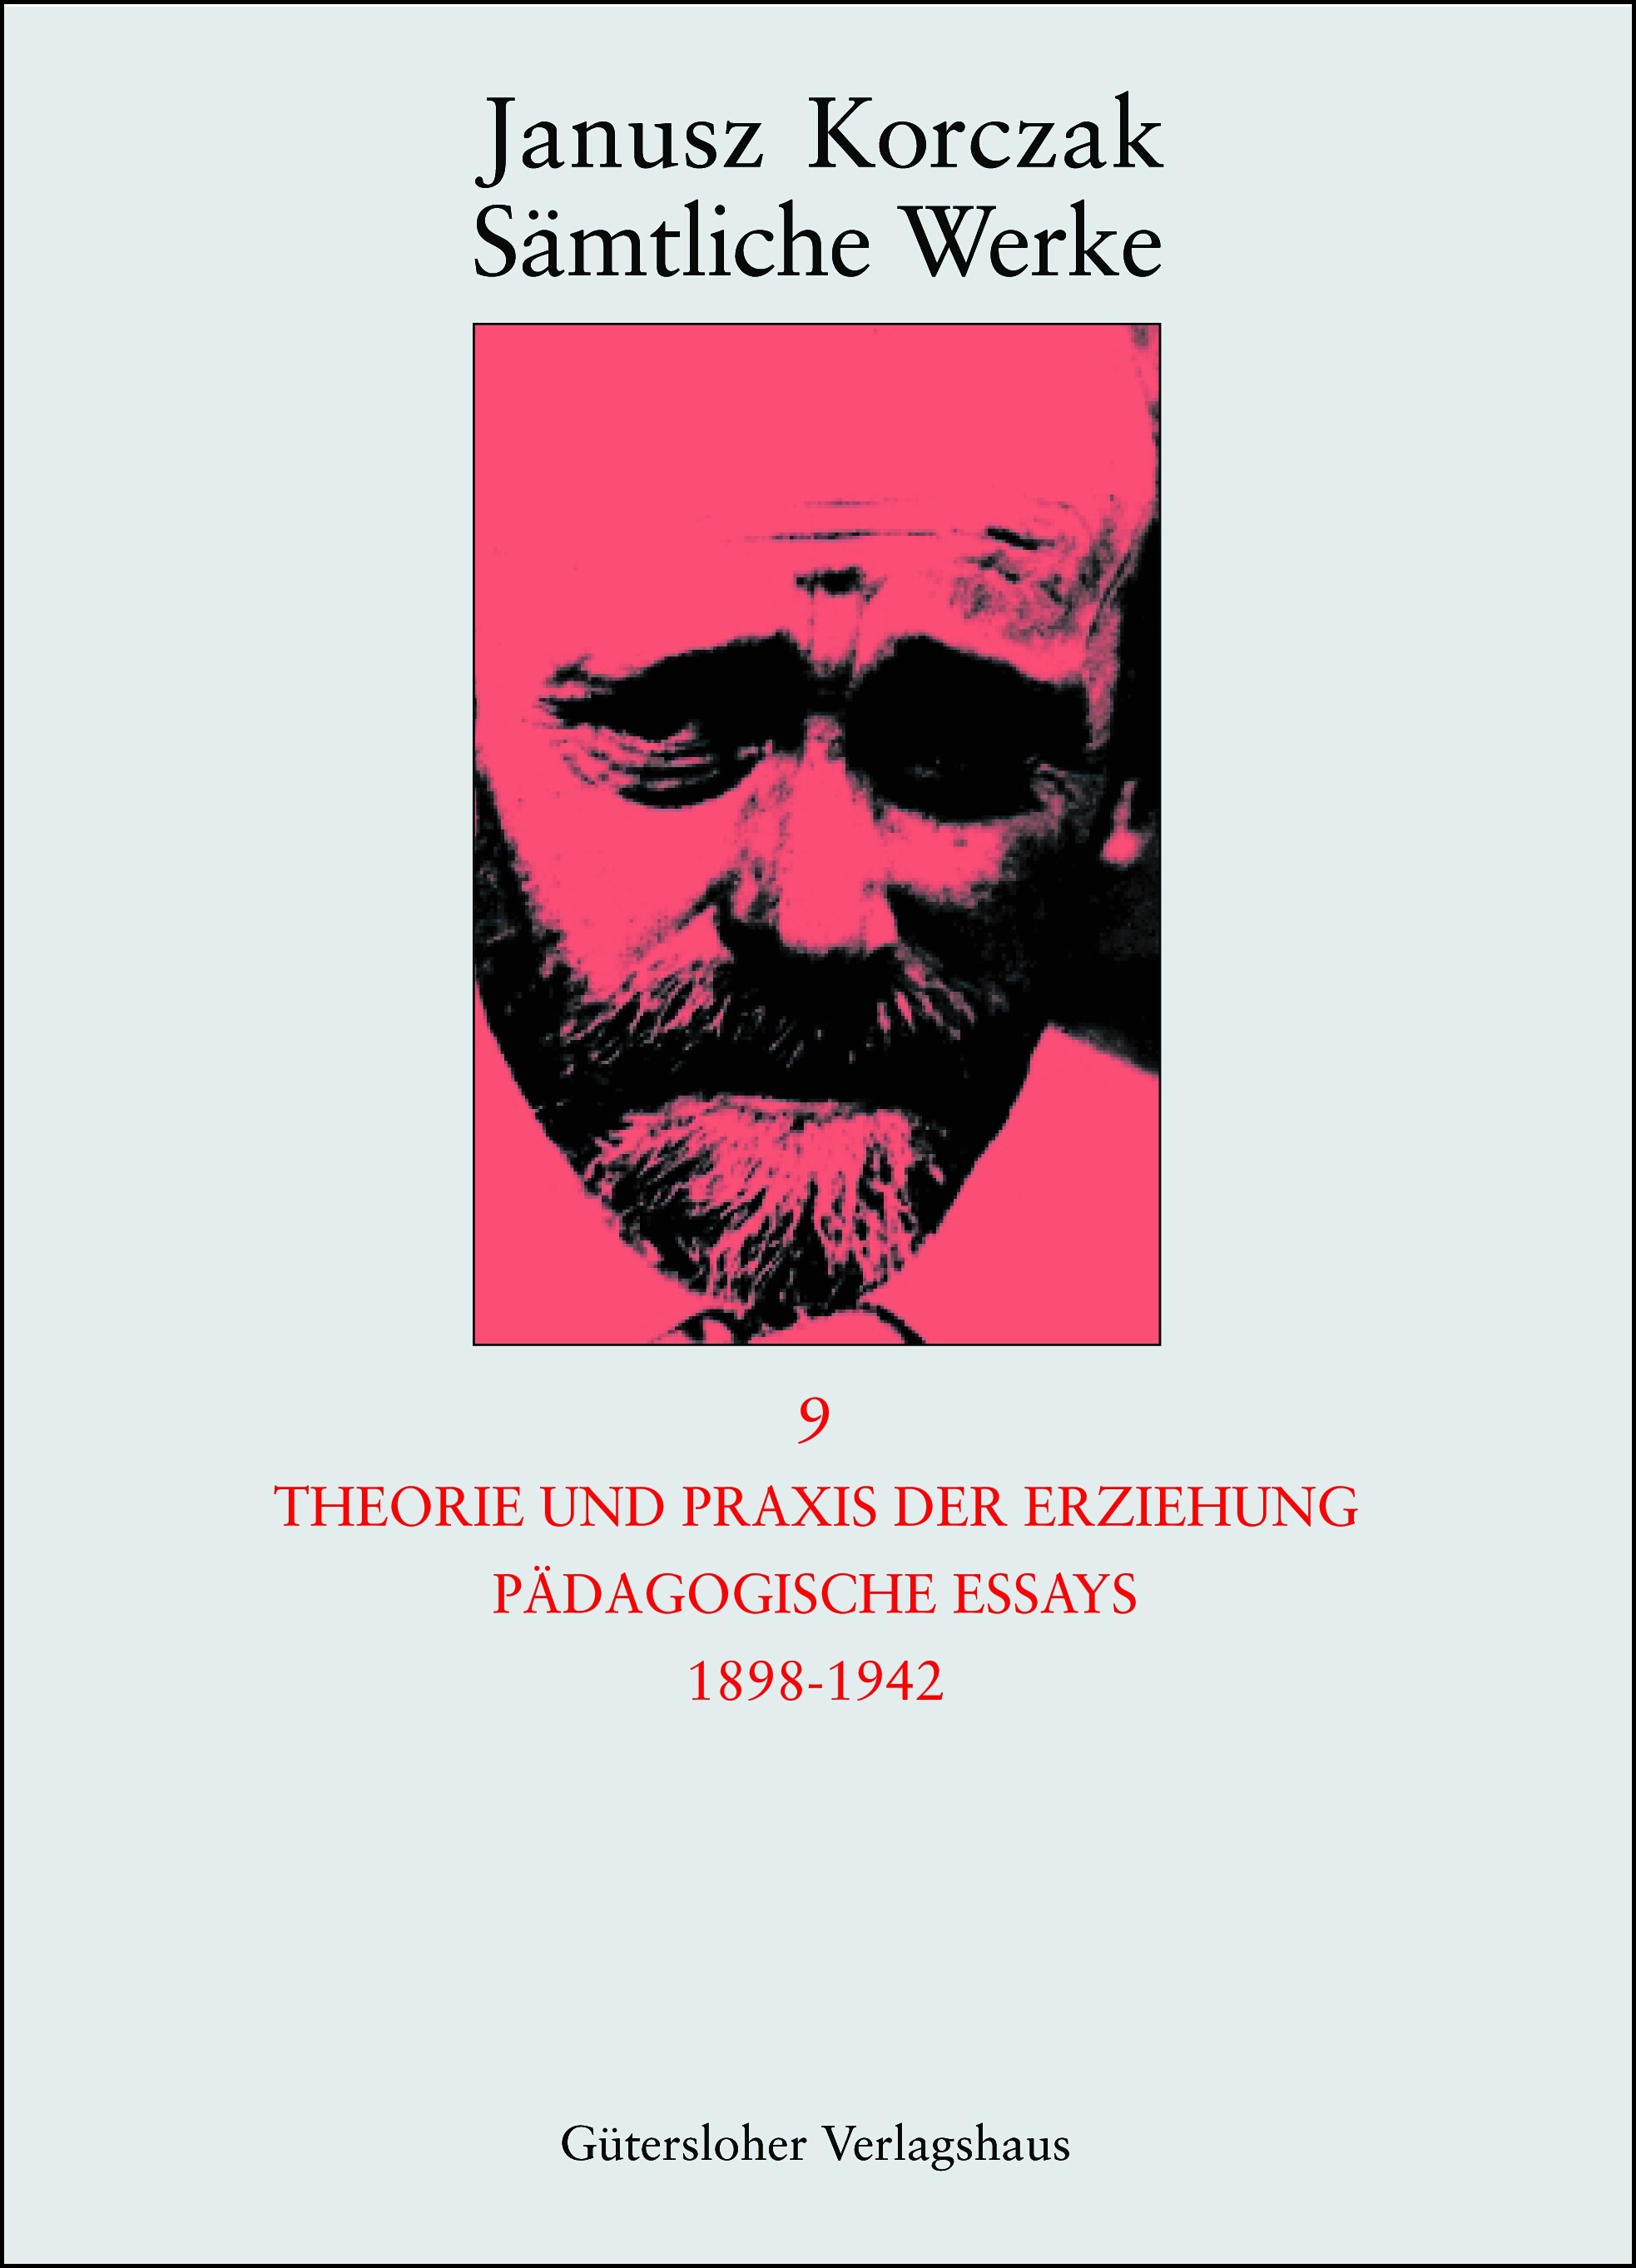 janusz korczak essays Janusz korczak janusz korczak janusz korczak (whose real name was henryk goldszmit) is one of the greatest and most impressive figures in contemporary pedagogy.